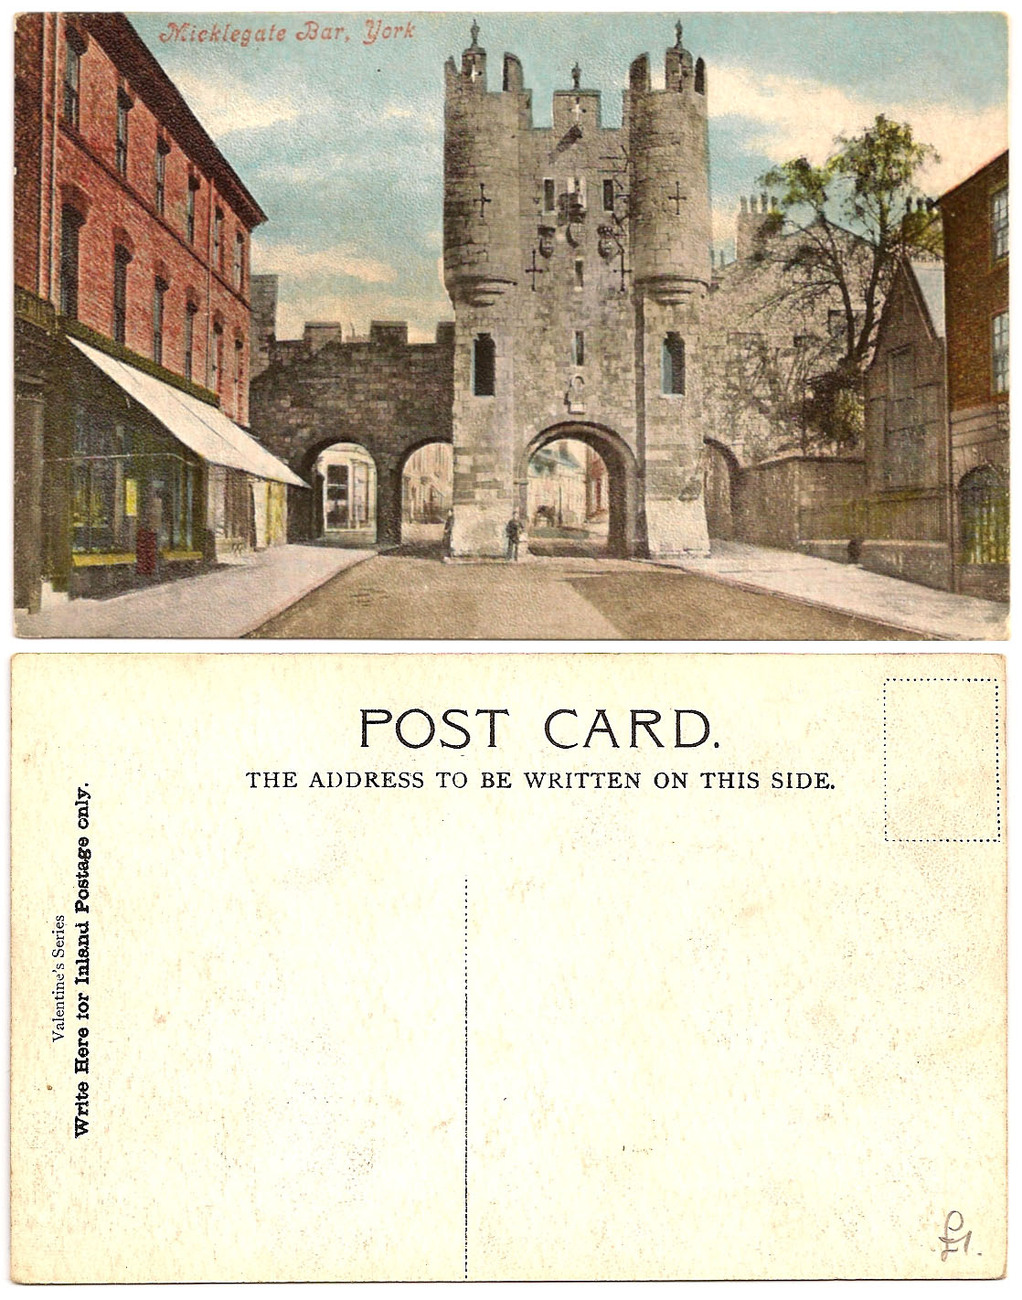 Old Postcards - Micklegate Bar, York UK